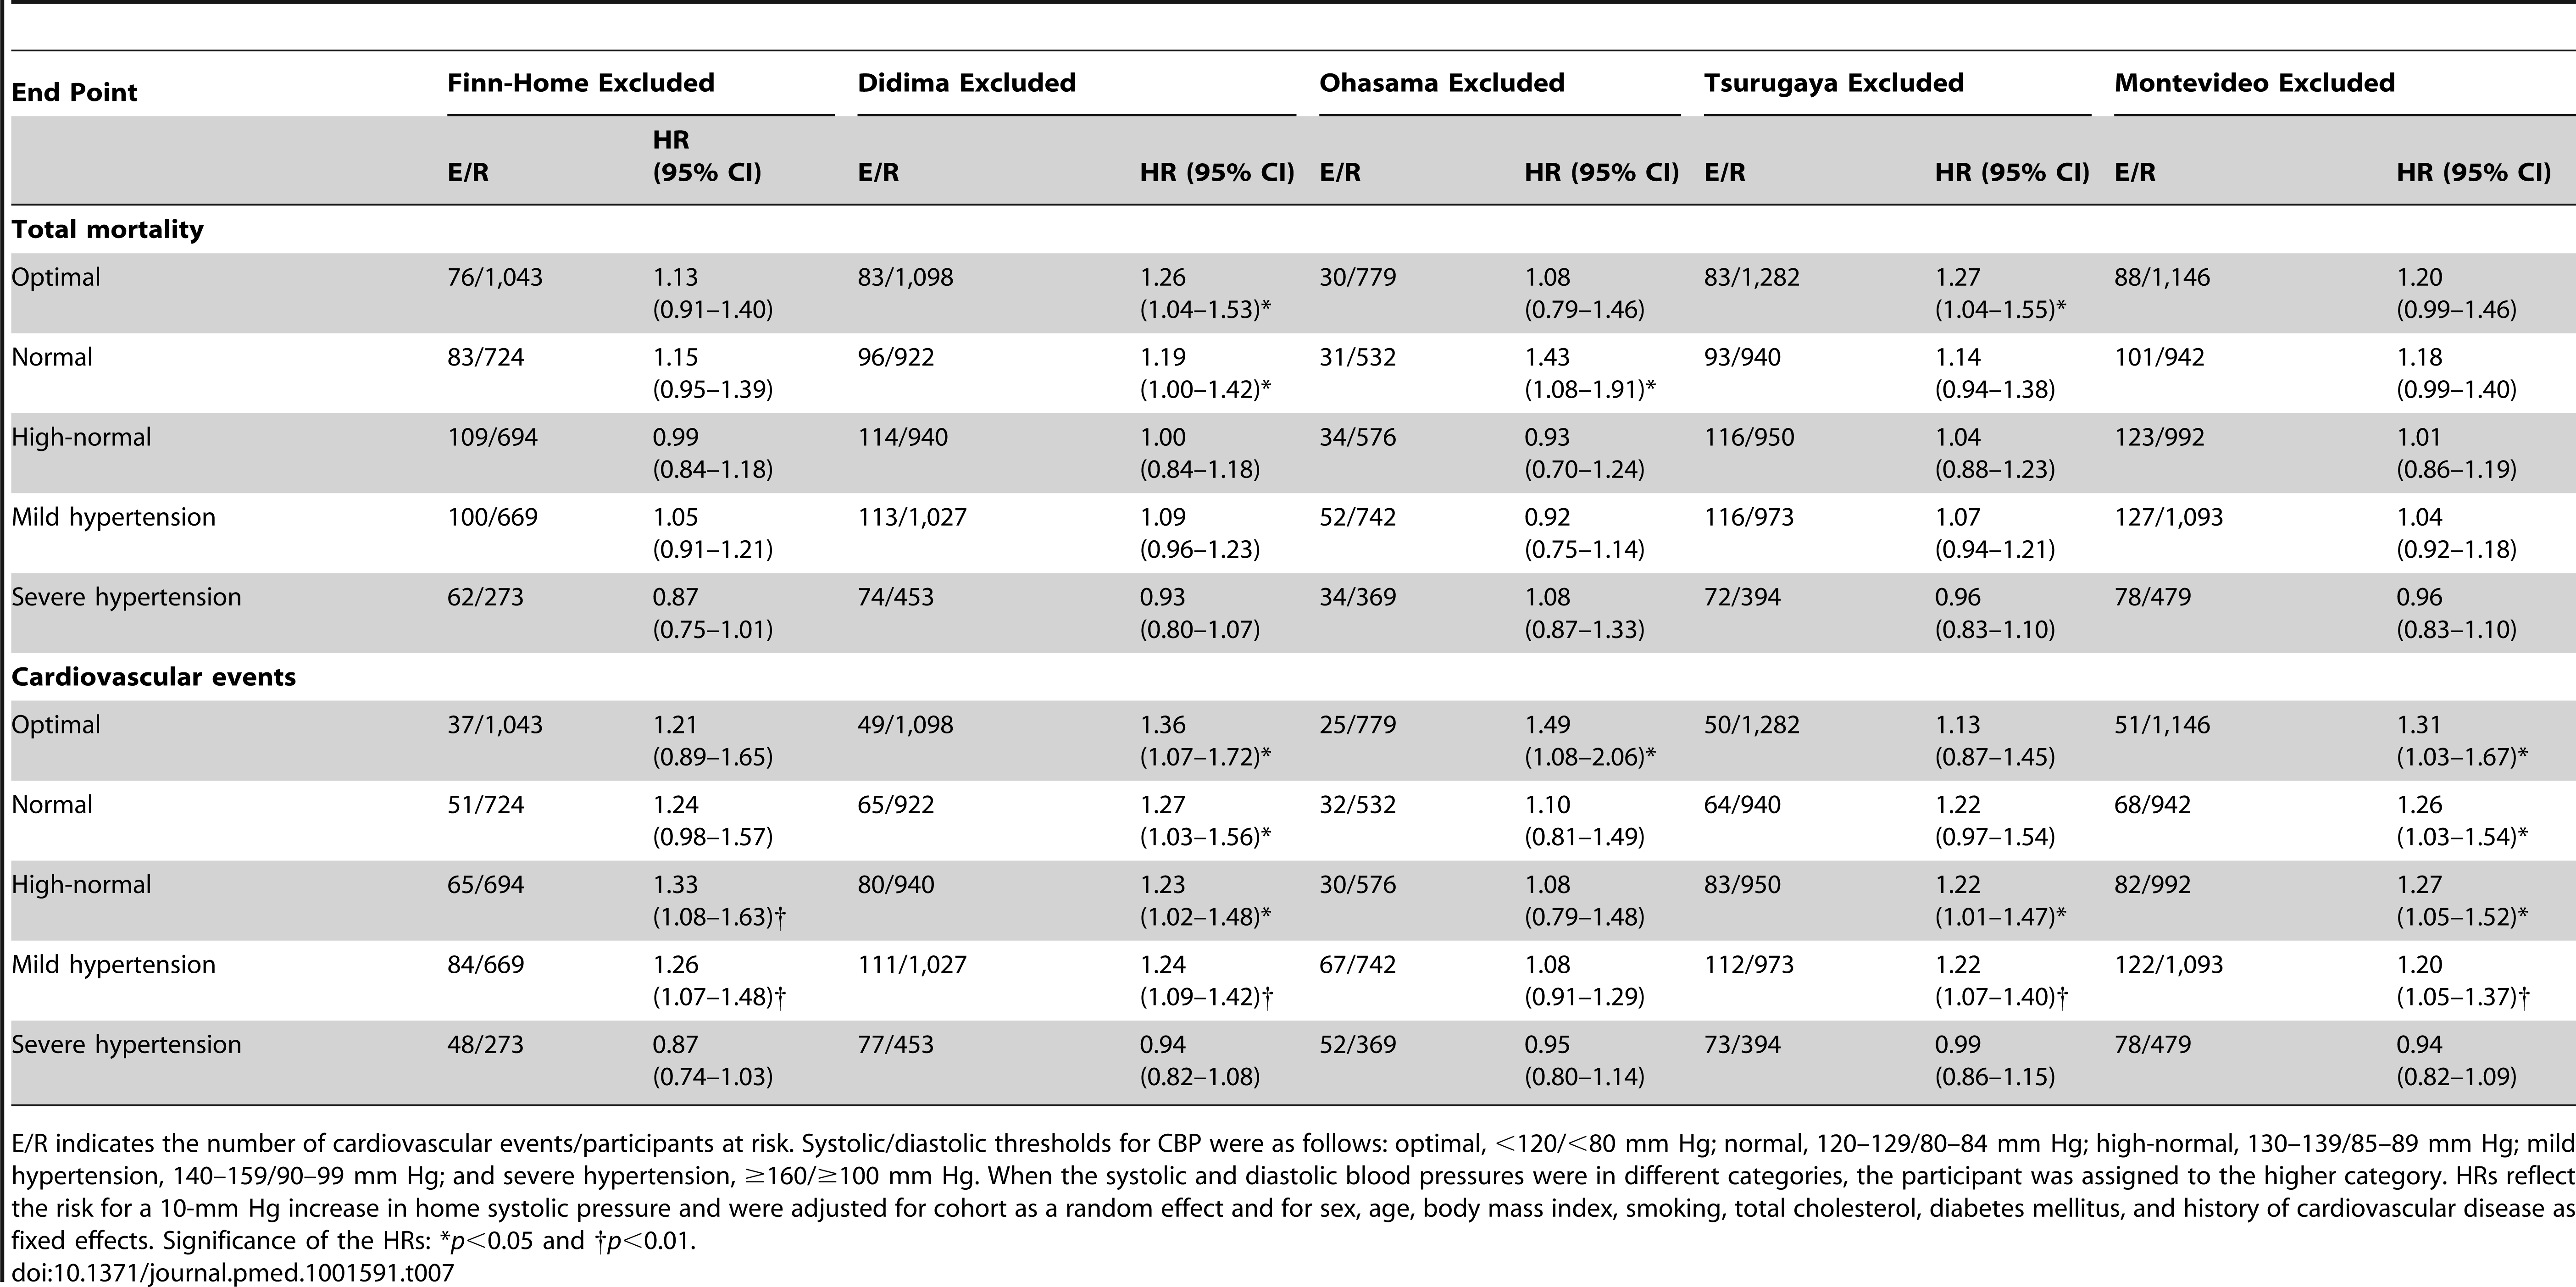 Sensitivity analysis for total mortality and cardiovascular events with one cohort excluded.